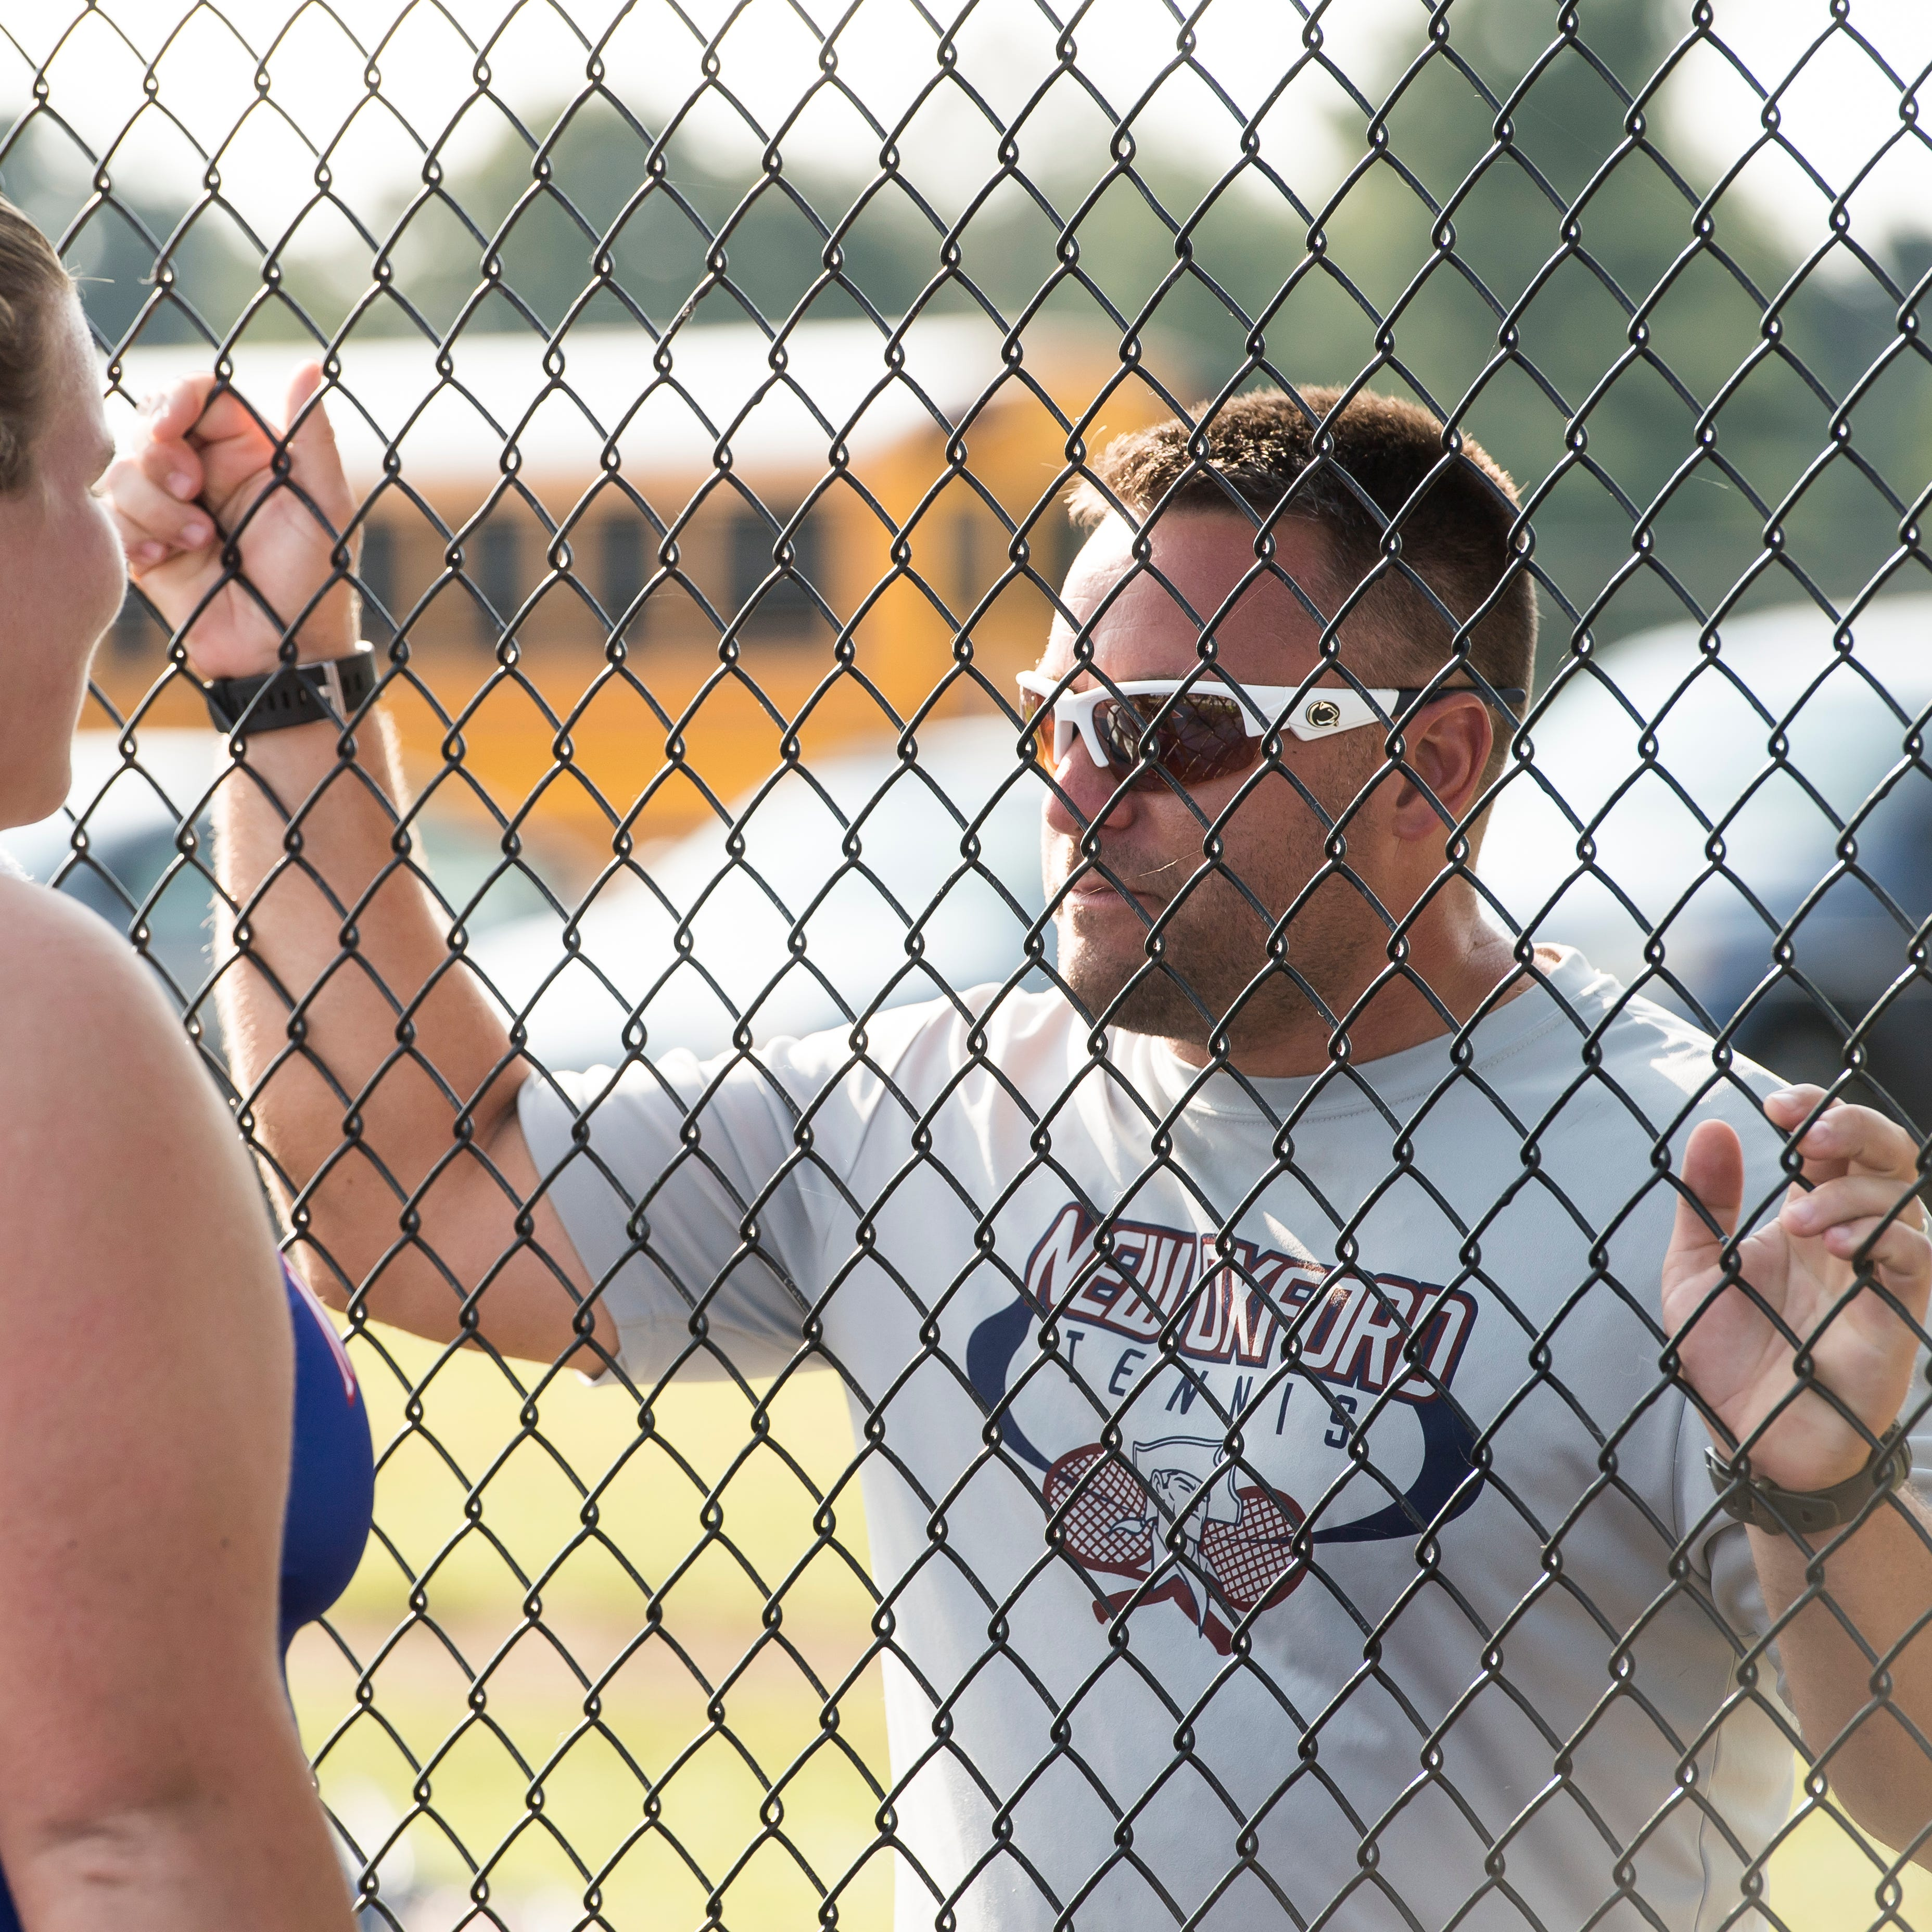 'More than just tennis': New Oxford coach with rare heart disease inspires team